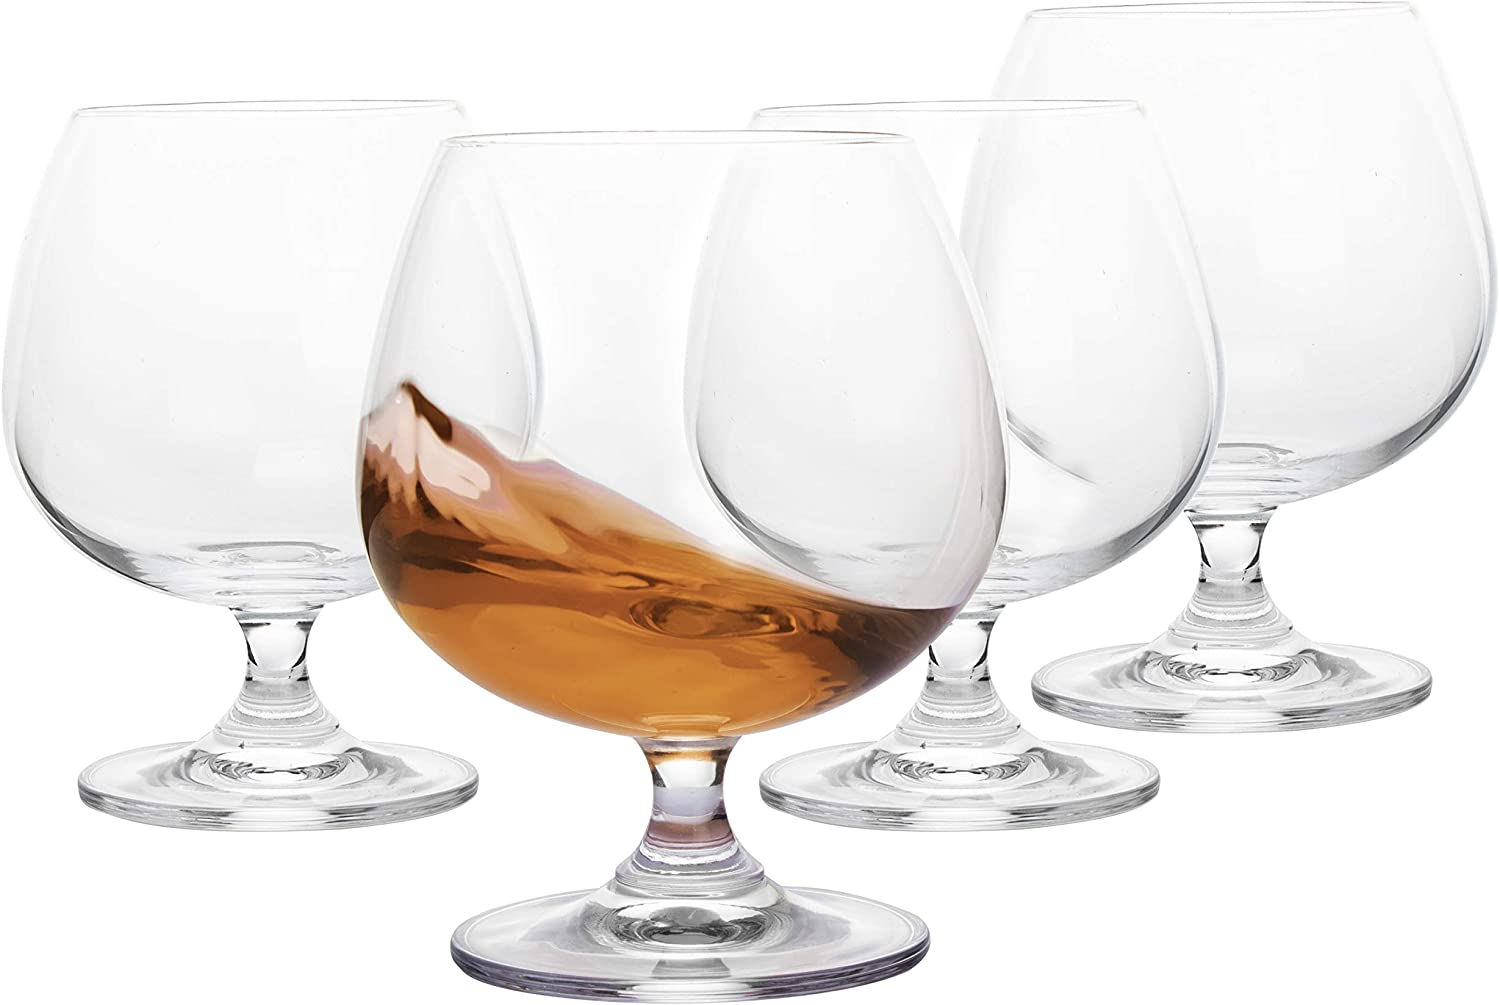 JEKOSEN Brandy /& Cognac whiskey Crystal Glasses Snifter Set of 4 Lead-free Clear Large Size 22oz